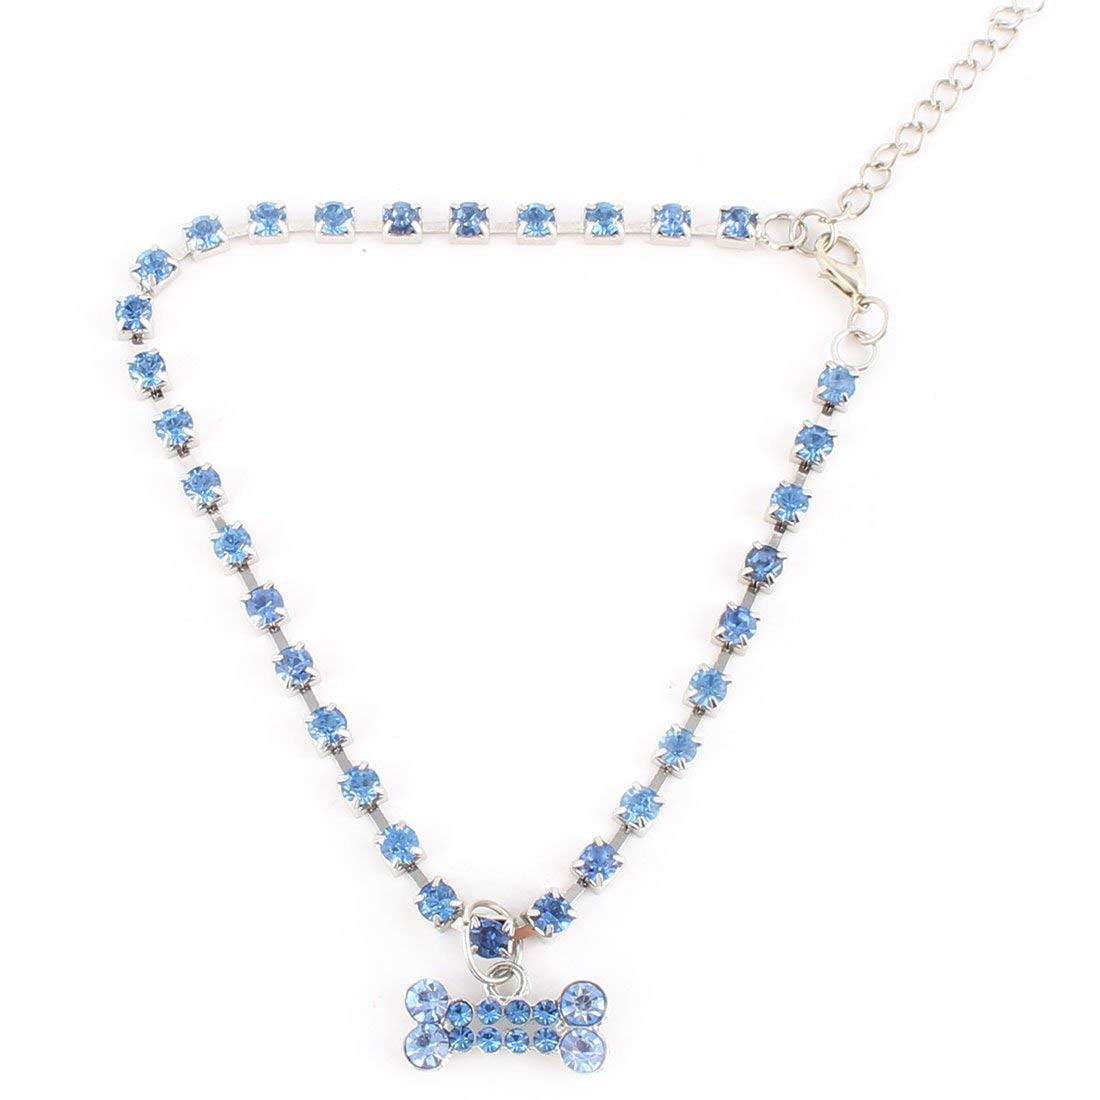 Rhinestone Mosaic Plastic Outdoor Round Bead Bowknot Pendent Adjustable Pet Necklace bluee